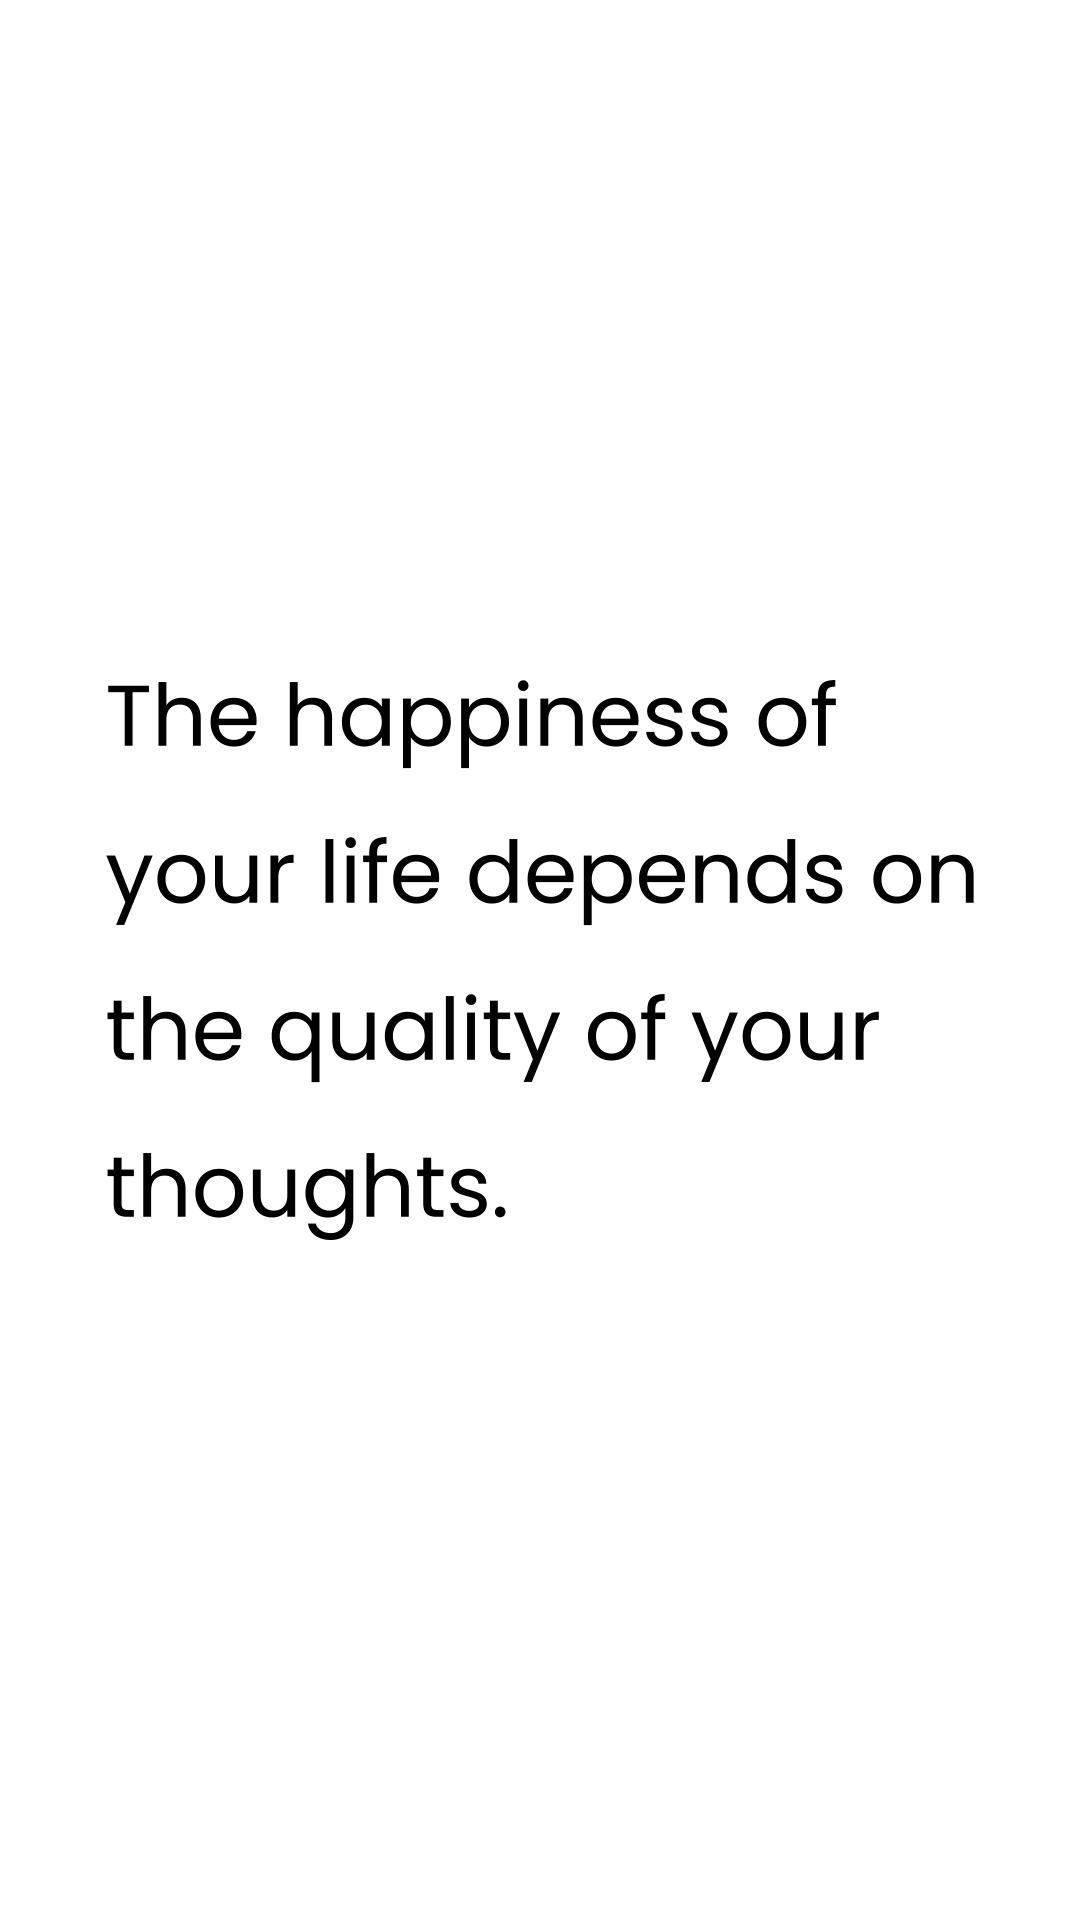 What type of thoughts do you have daily?